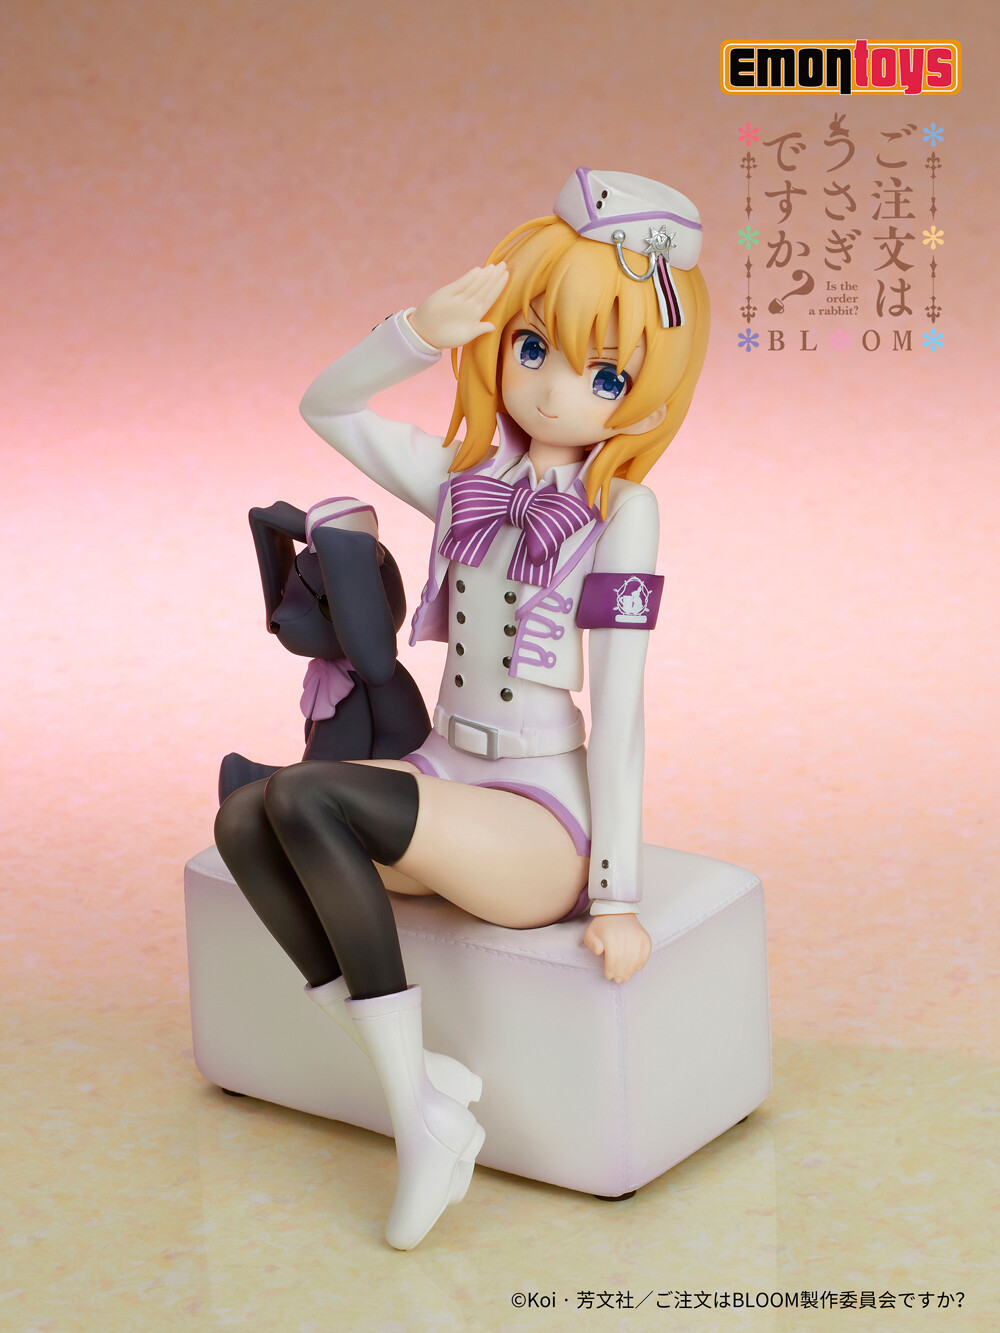 PRE-ORDER Good Smile Is The Order a Rabbit? COCOA Military uniform Ver.